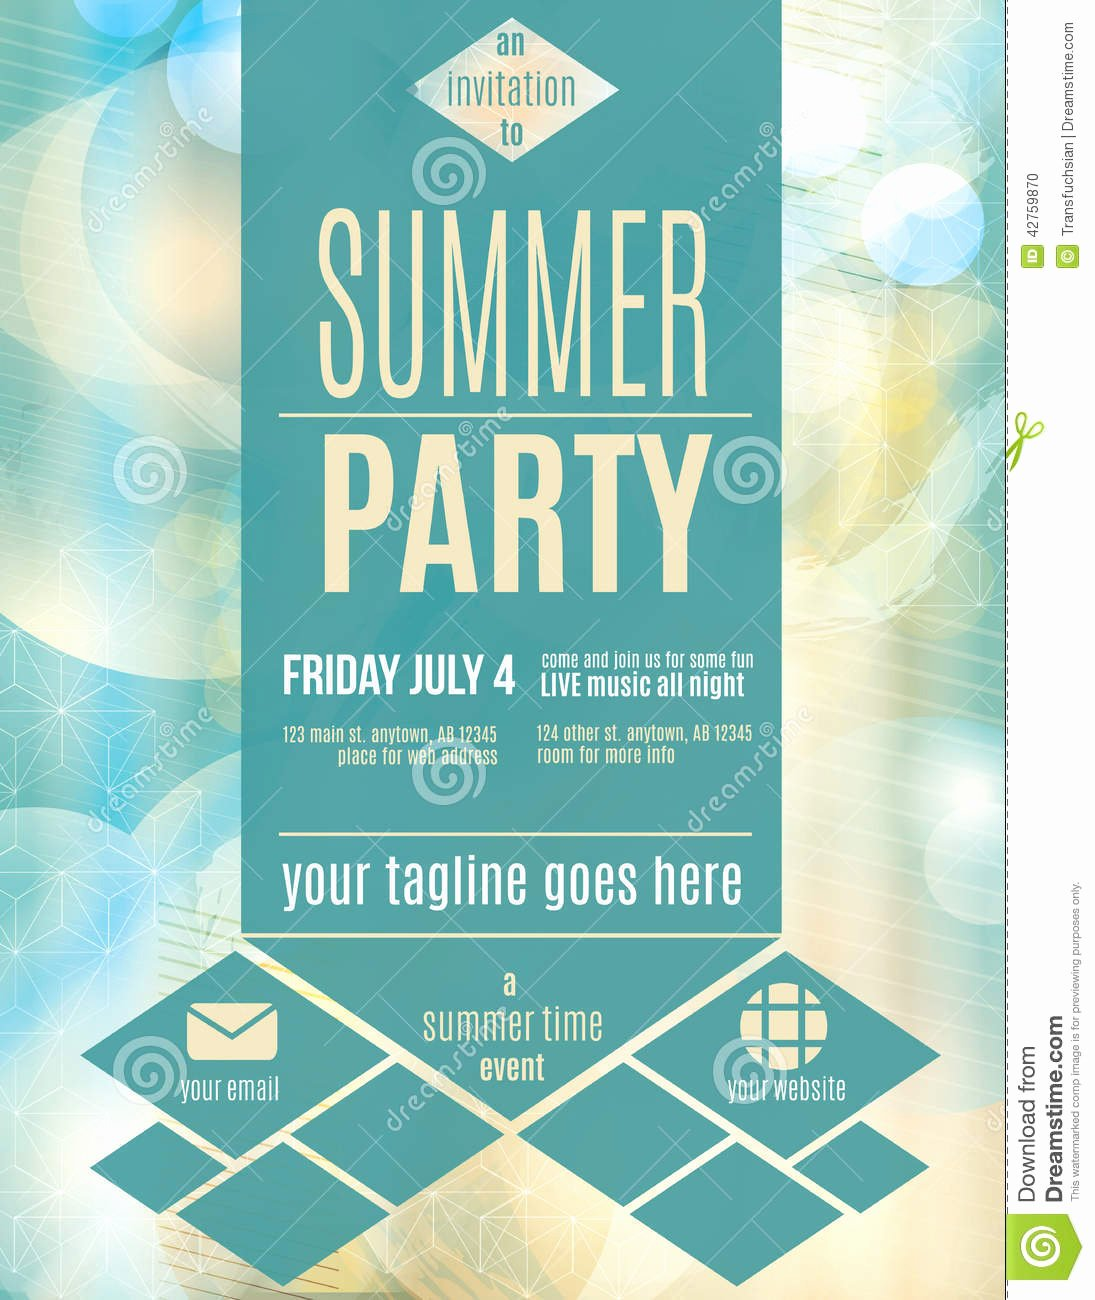 Summer Party Invitation Template Unique Modern Style Summer Party Flyer Template Download From Ov